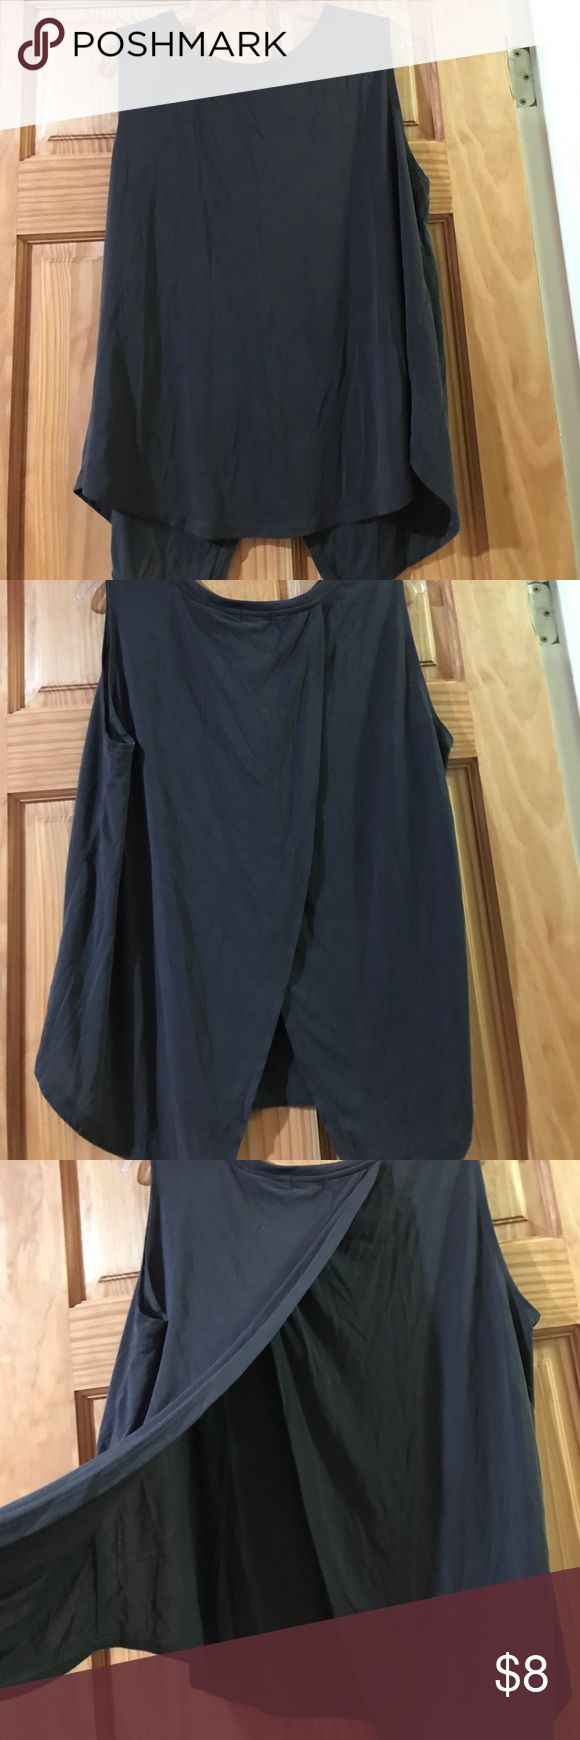 Cute Old Navy Tank Top Light weight Old Navy Tank Top. Perfect for warm weather or working out. In perfect condition! Old Navy Tops Tank Tops